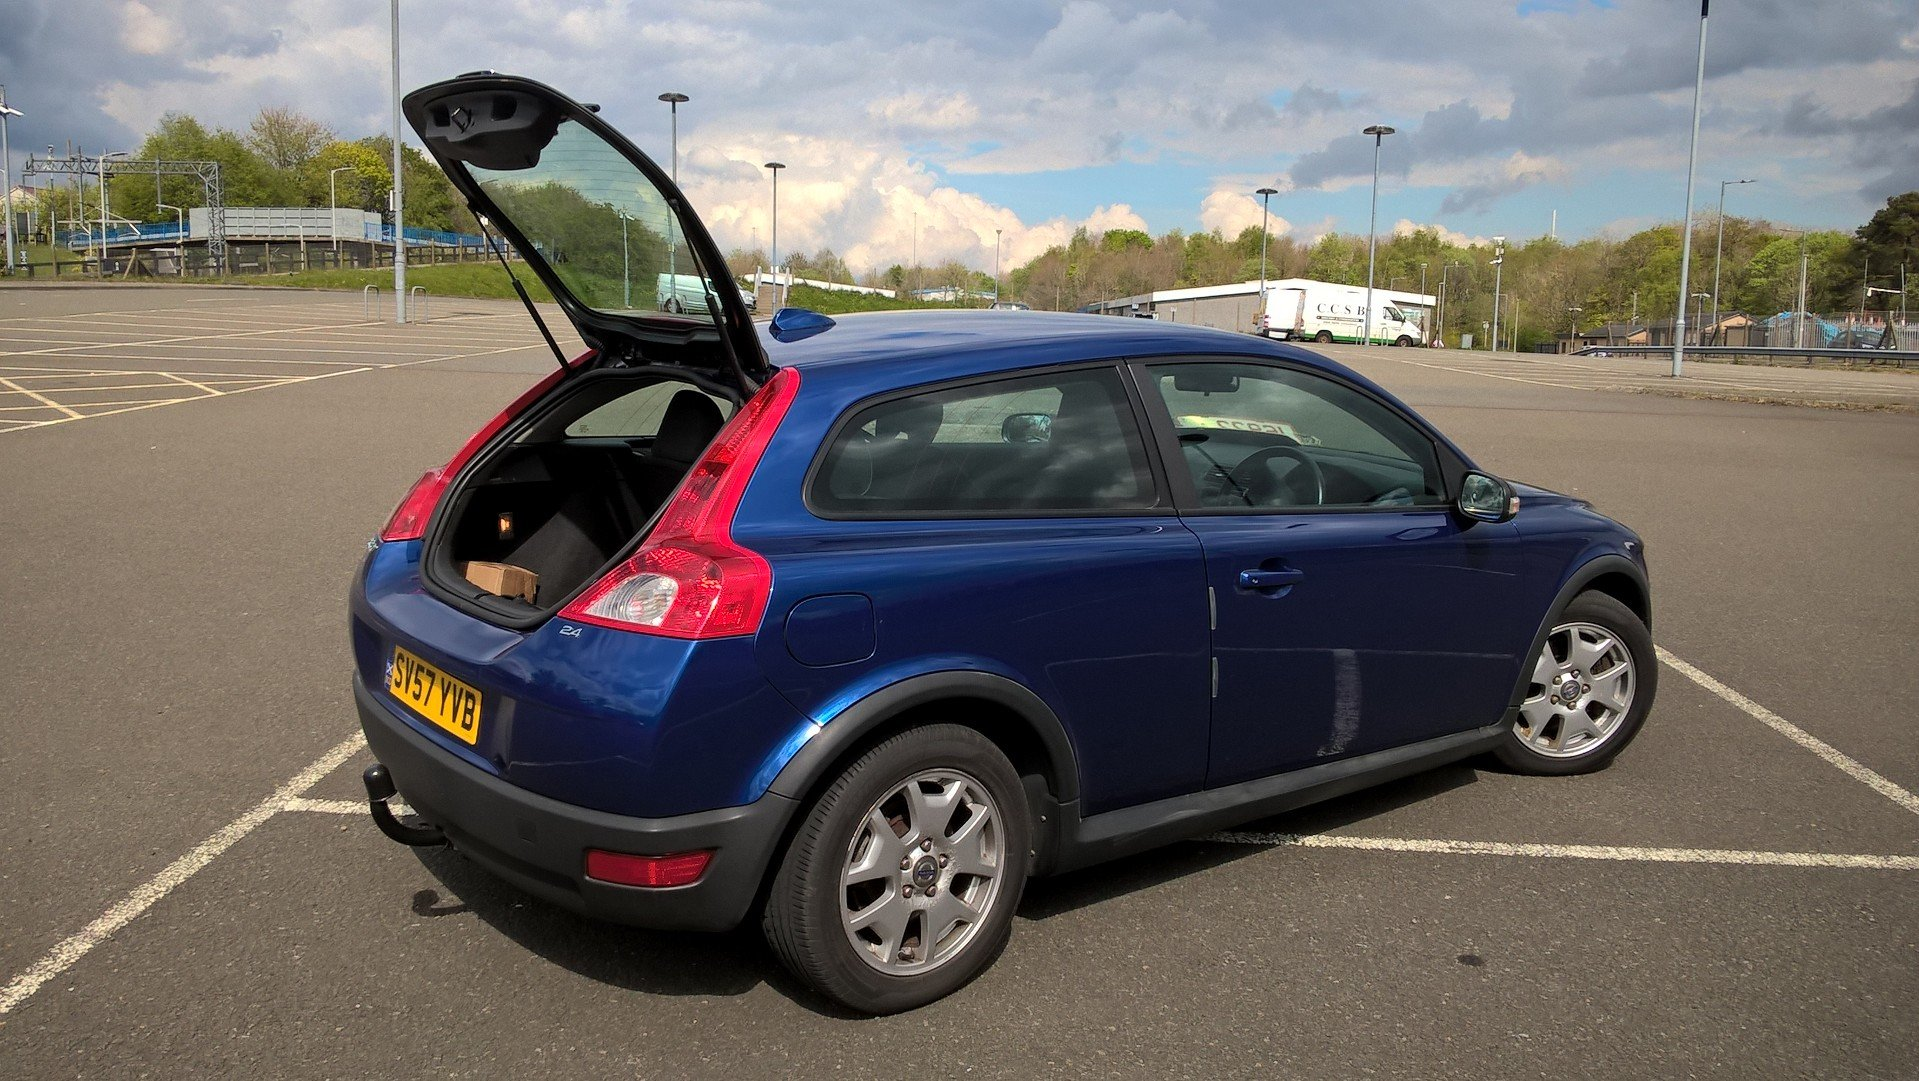 2007 volvo c30 s 2.4 automatic For Sale (picture 1 of 6)